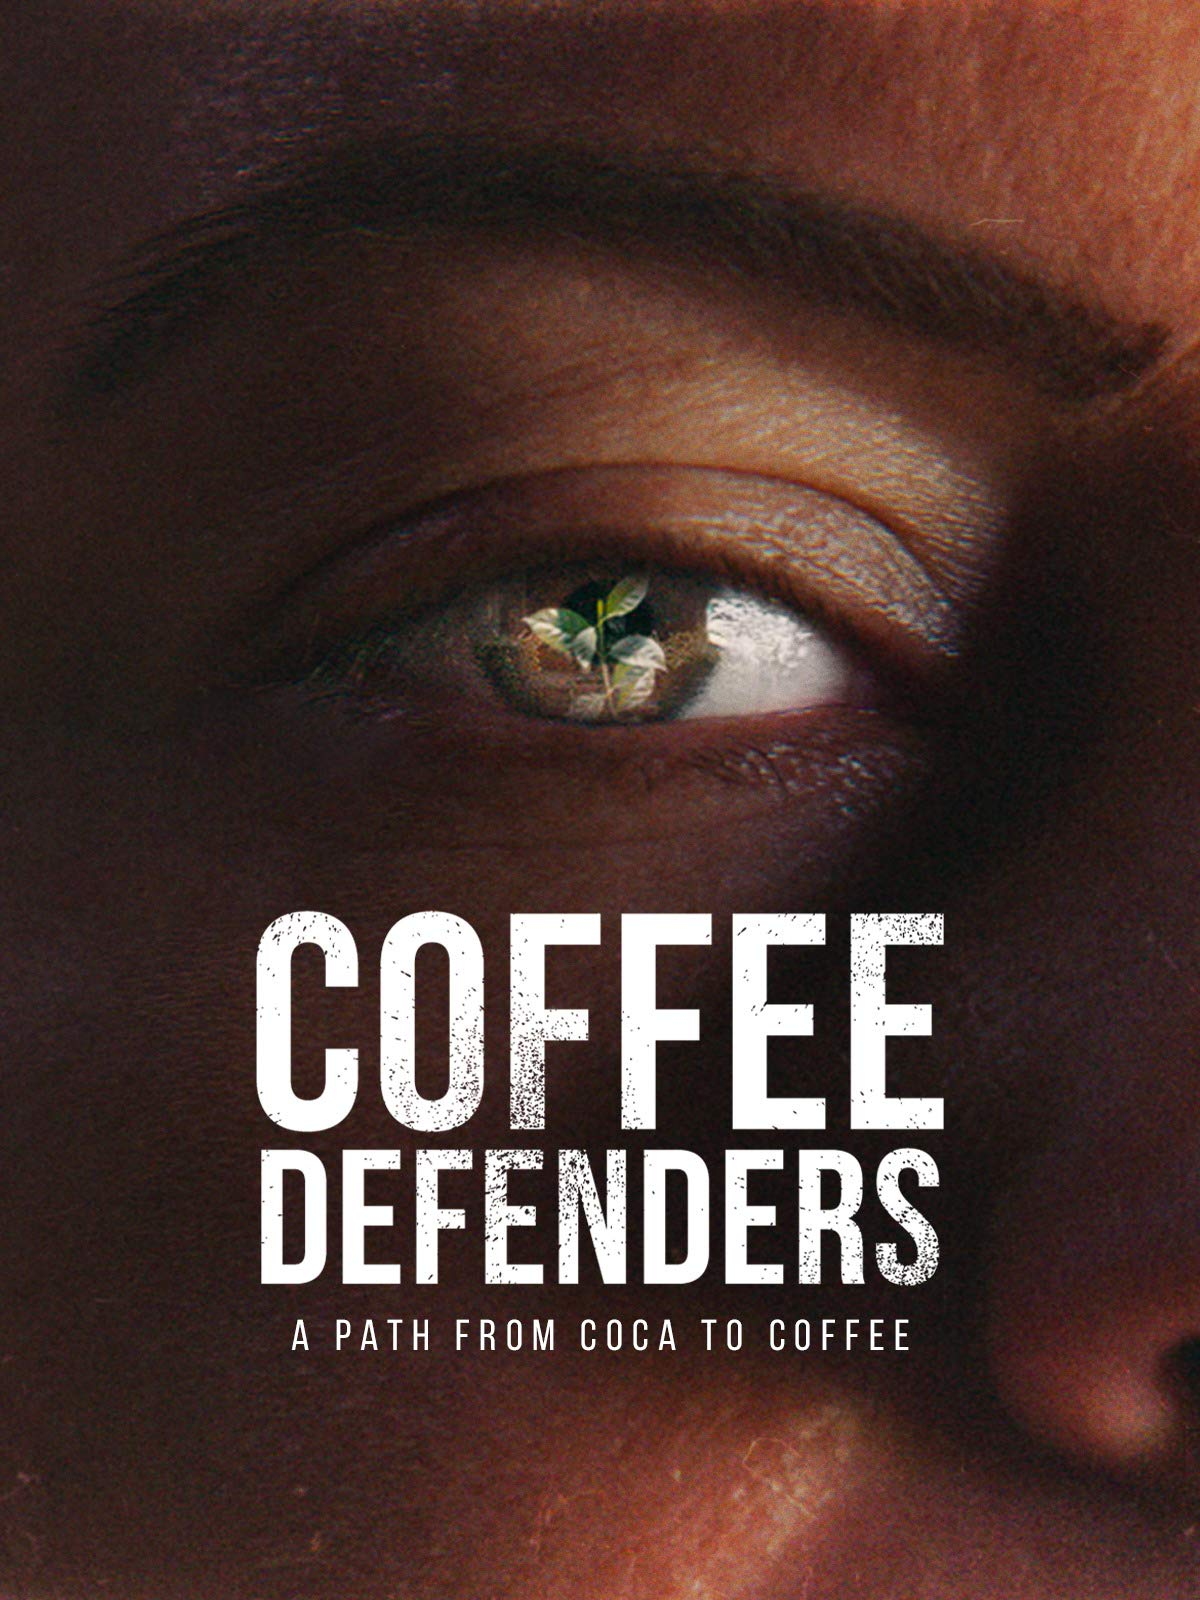 Coffee Defenders: a Path from Coca to Coffee